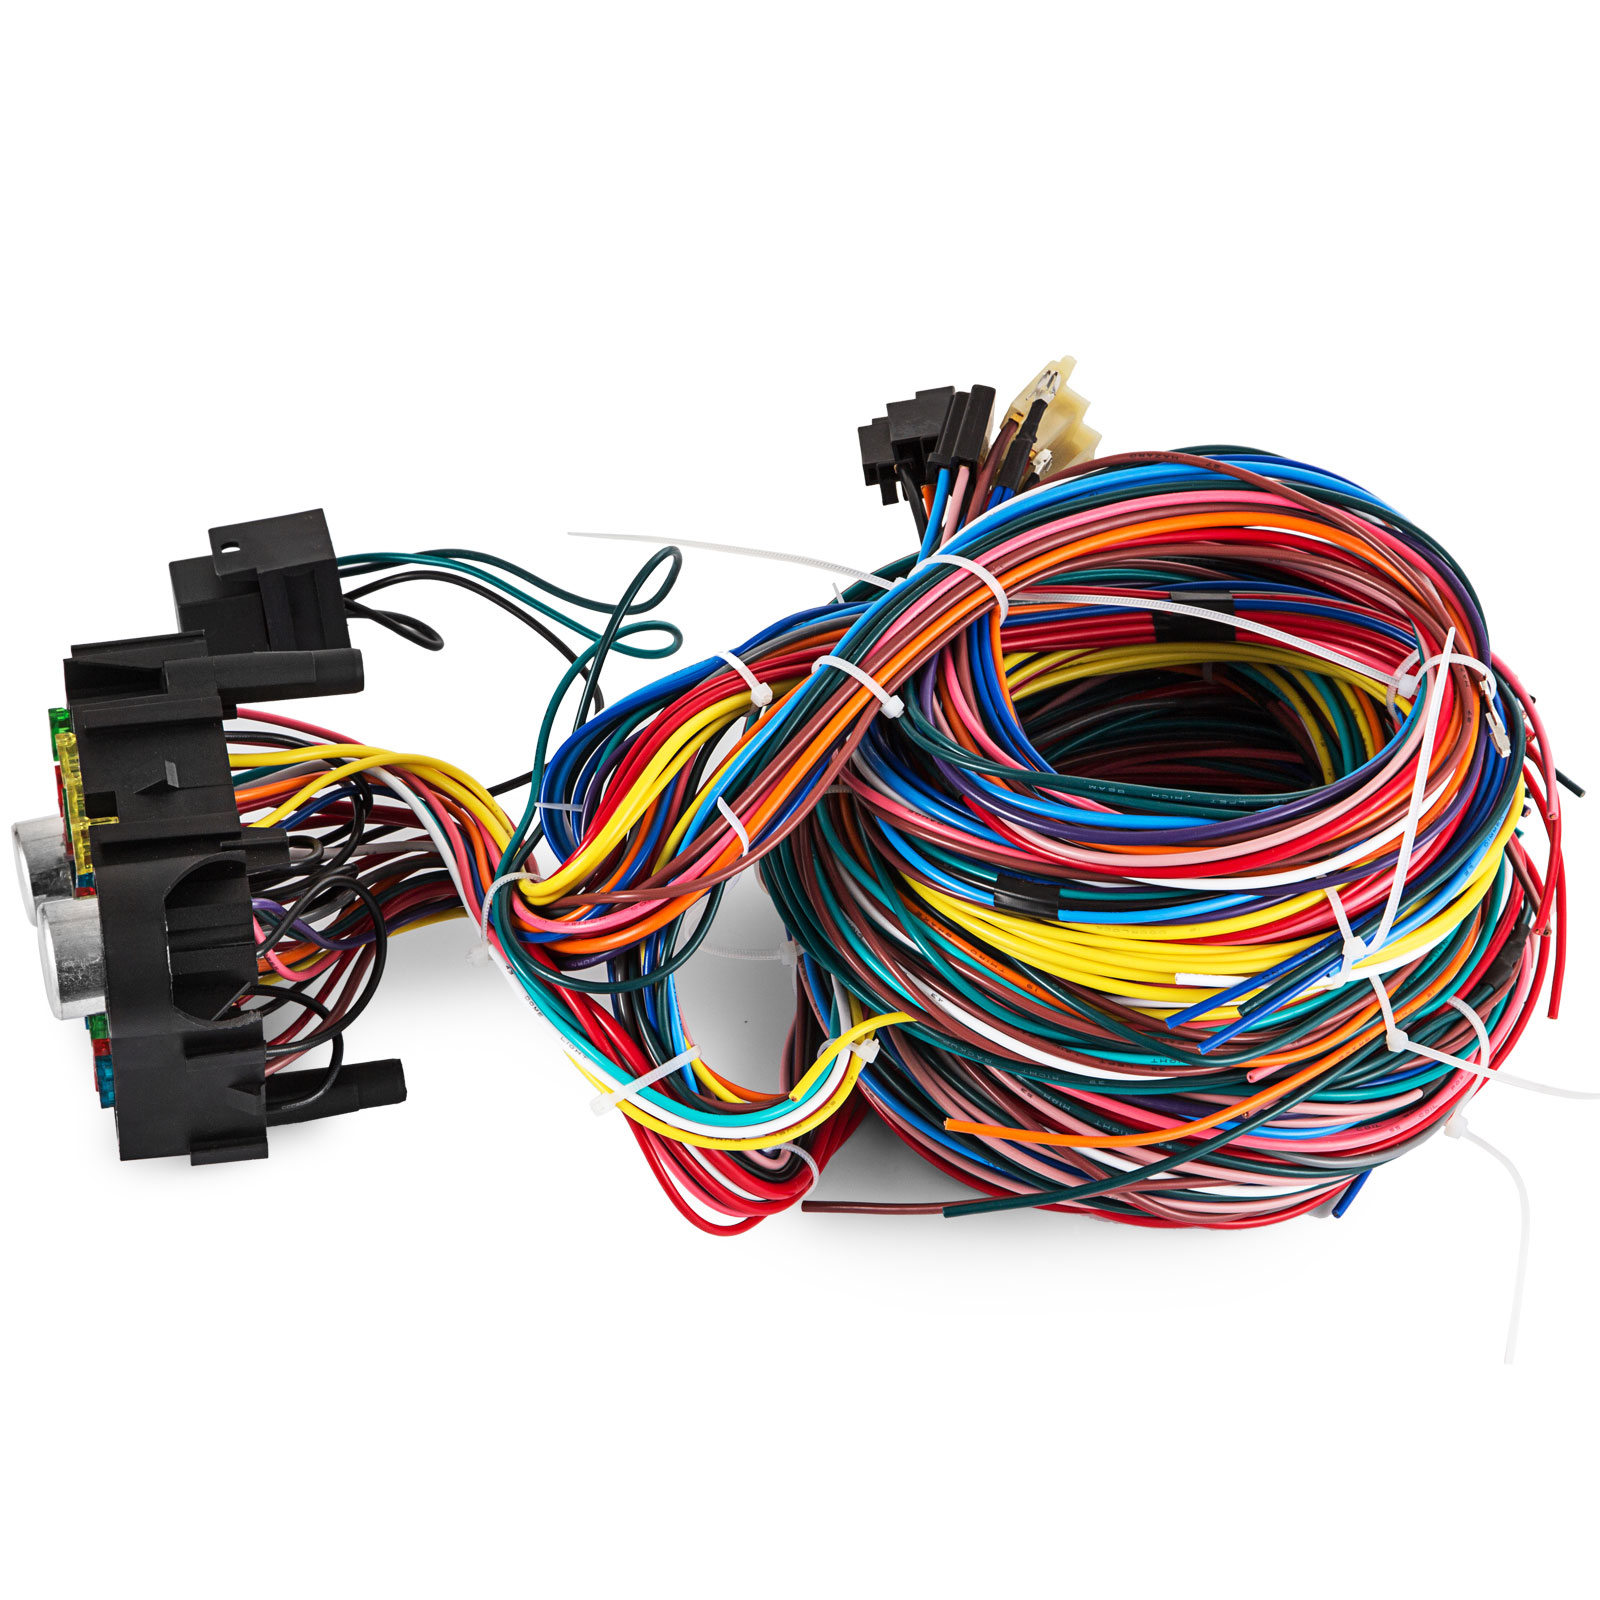 21 Circuit Wiring Harness Chevy Mopar Ford Hot Rods Universal Wire Pictures